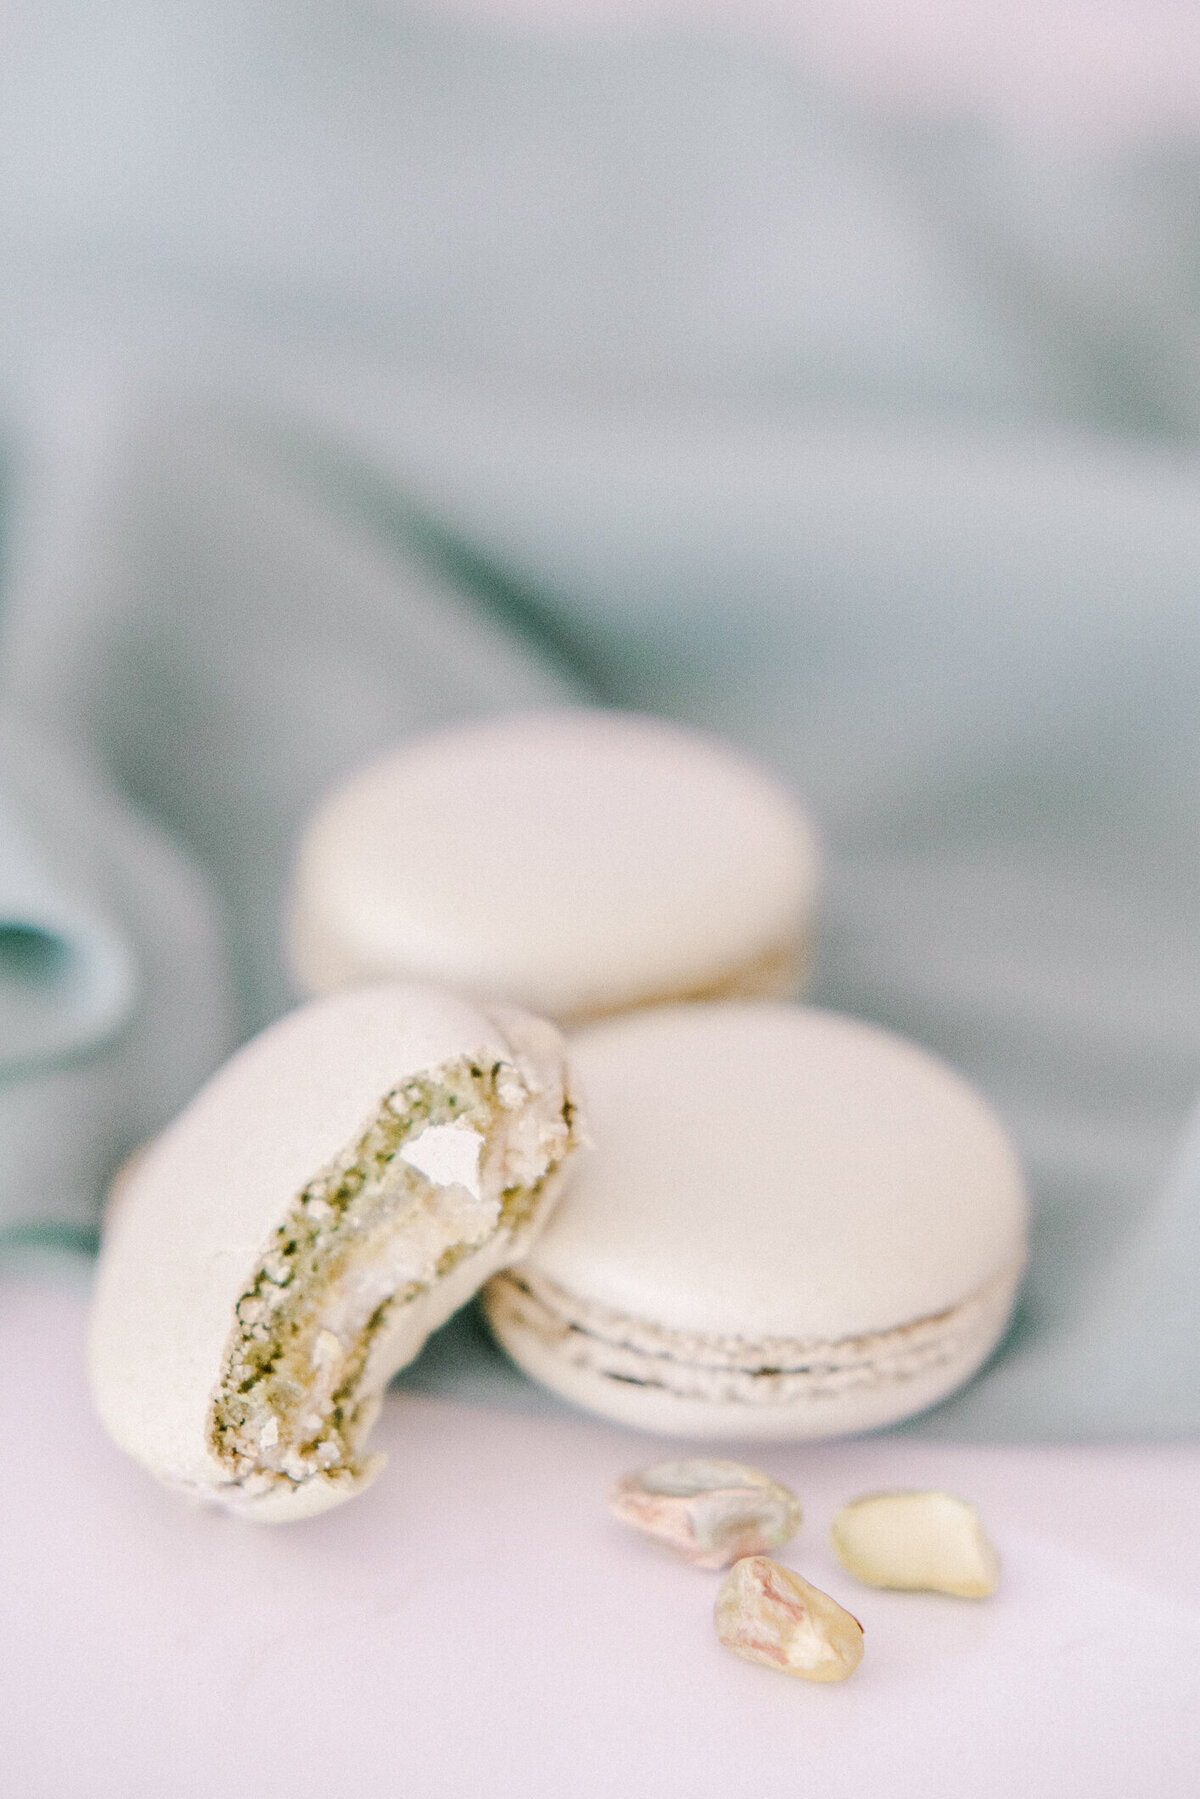 Kelowna French Macarons and Silk Ribbon